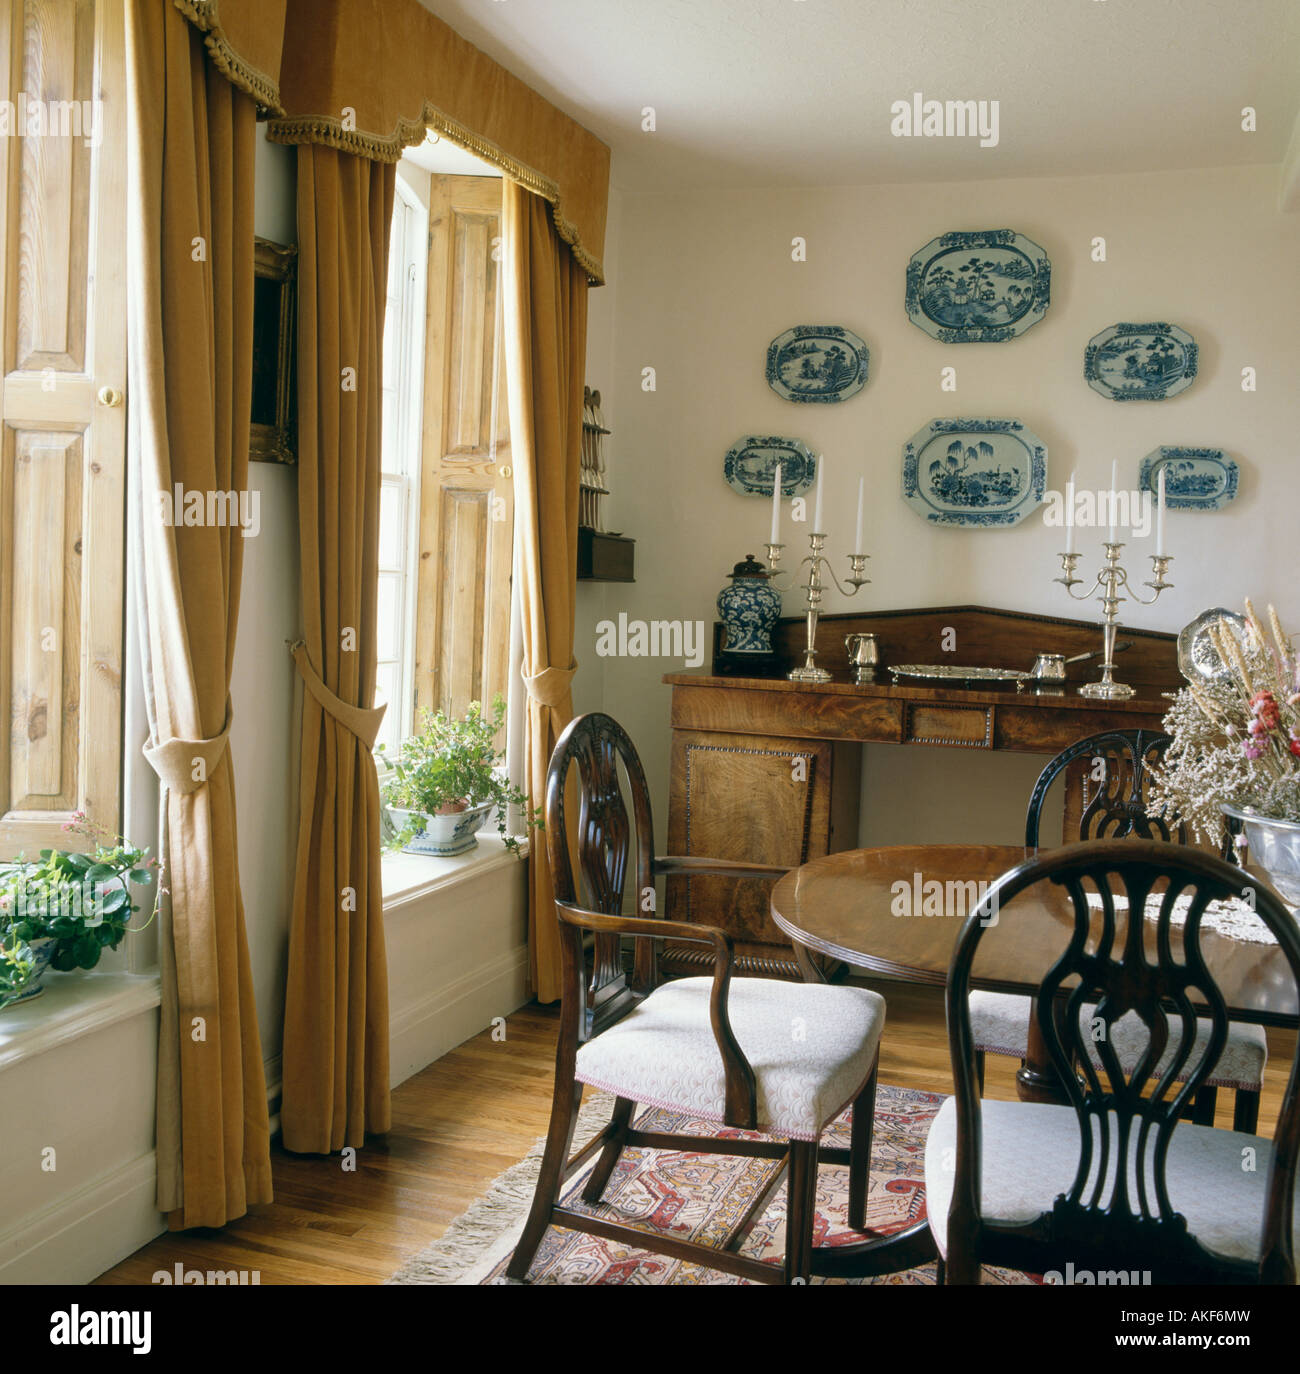 Blue And White Plates Above Antique Sideboard In Country Dining